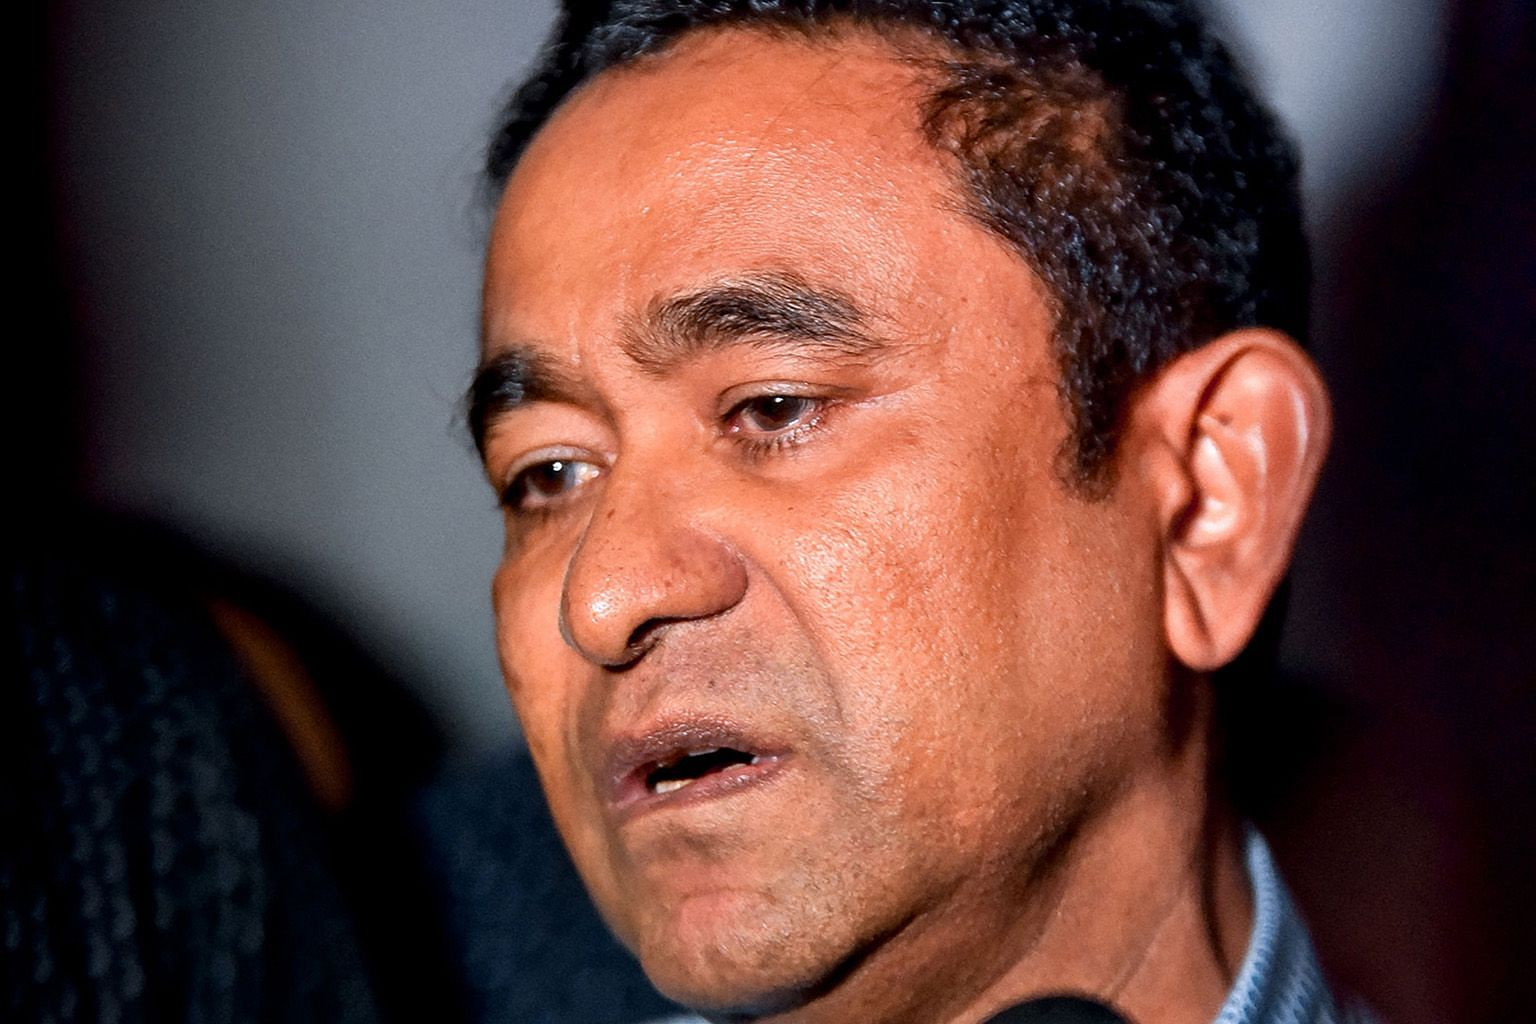 Maldives former president Abdulla Yameen faces money laundering, theft and corruption charges.